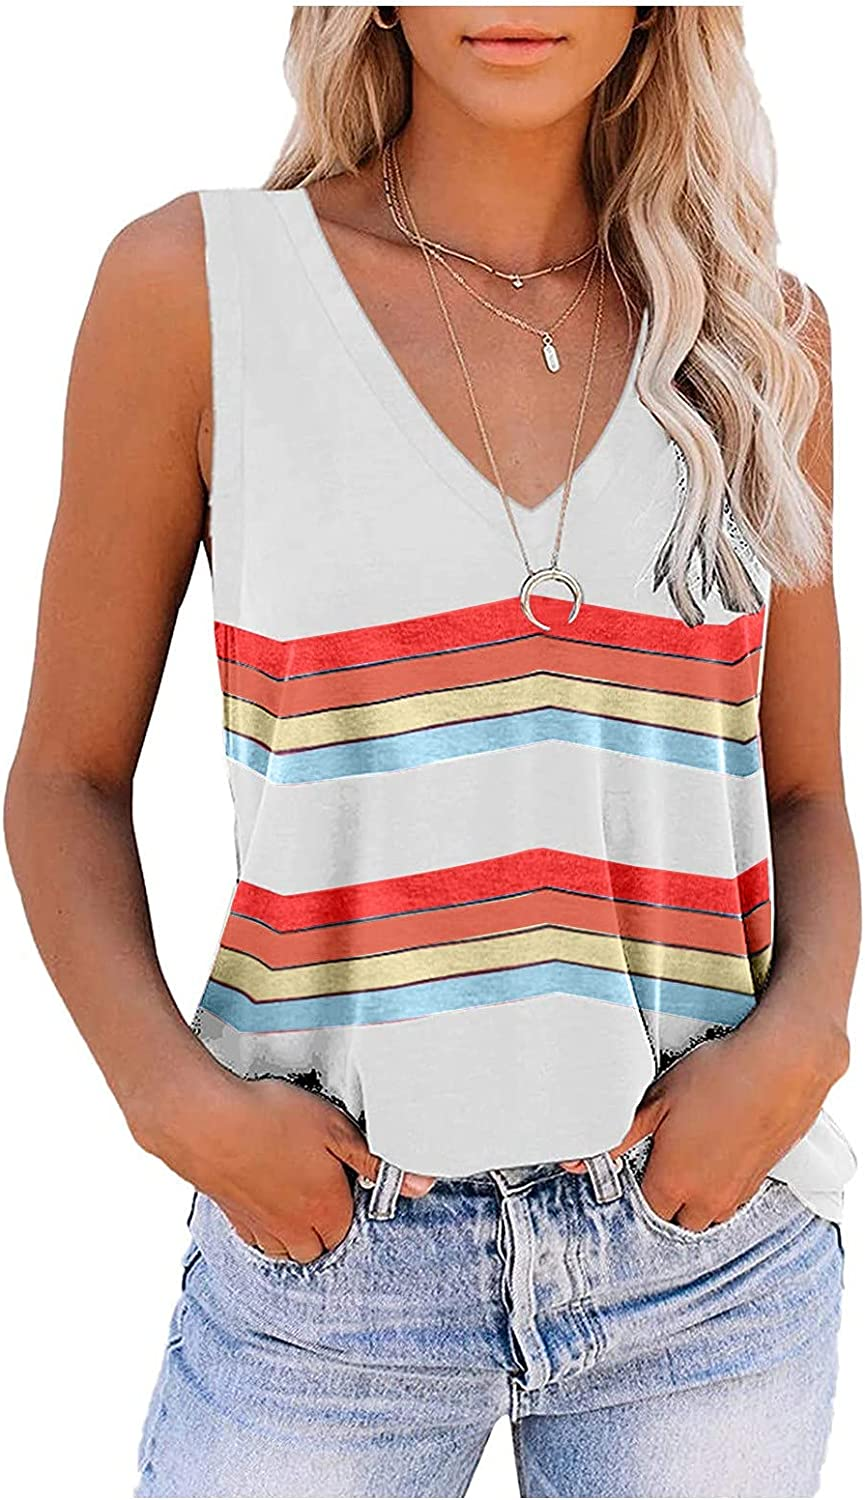 MASZONE Womens Scoop Neck Henley Tank Tops Low Cut Solid Sexy Top Summer Sleeveless Button Down Shirts Trendy T Shirts